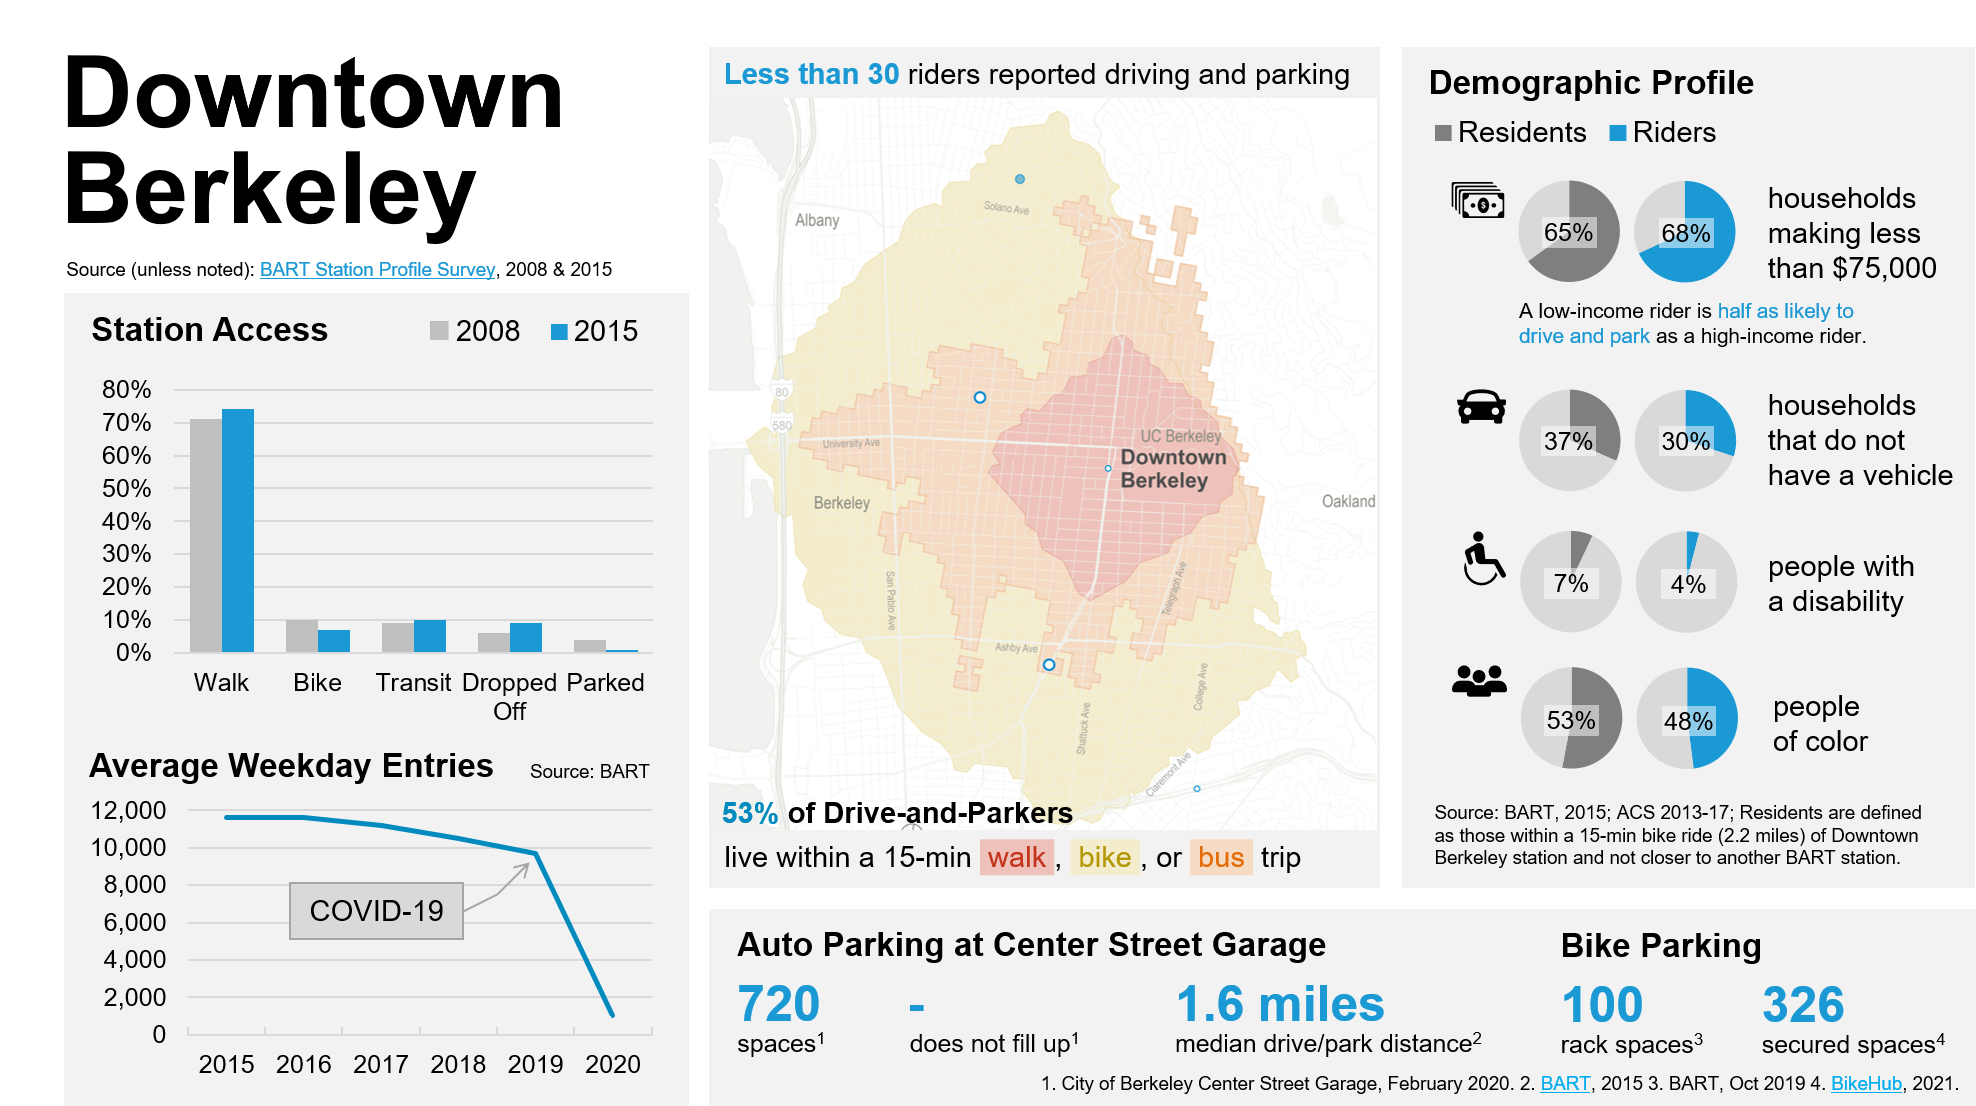 This is graphic with multiple charts, graphs, and data about the people who use the Downtown Berkeley BART station and how they get to and from the station. The graphic and a narrative description can be downloaded as a PDF from the website using the link directly above this graphic.